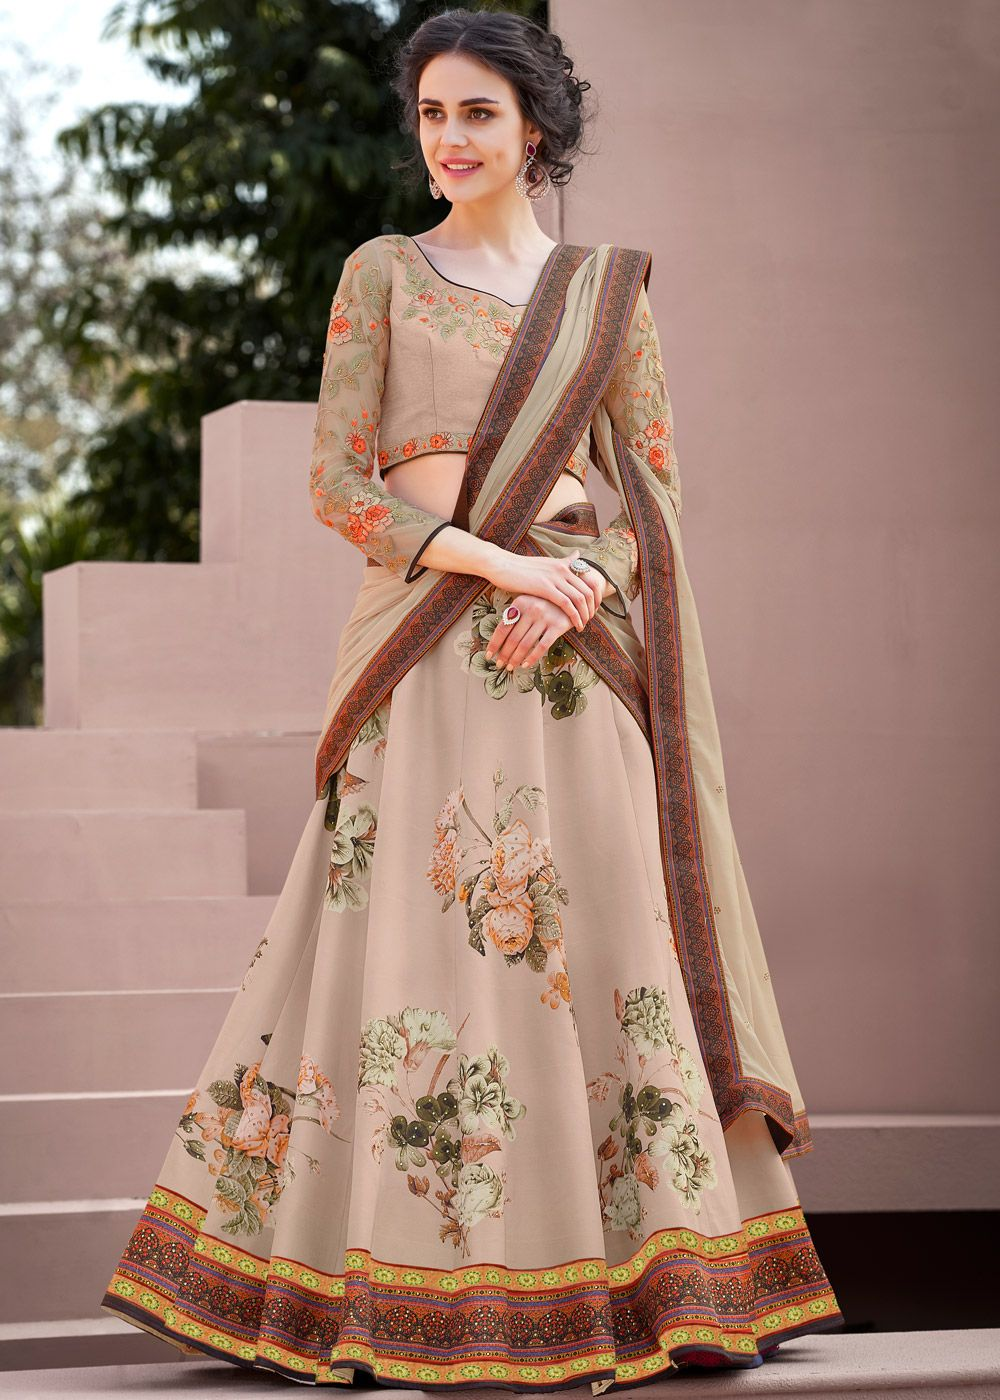 0617e5f113 Beige coloured satin silk lehenga choli with floral printing all over  enhanced by stunning stone work. As shown it comes with a satin silk blouse  with ...